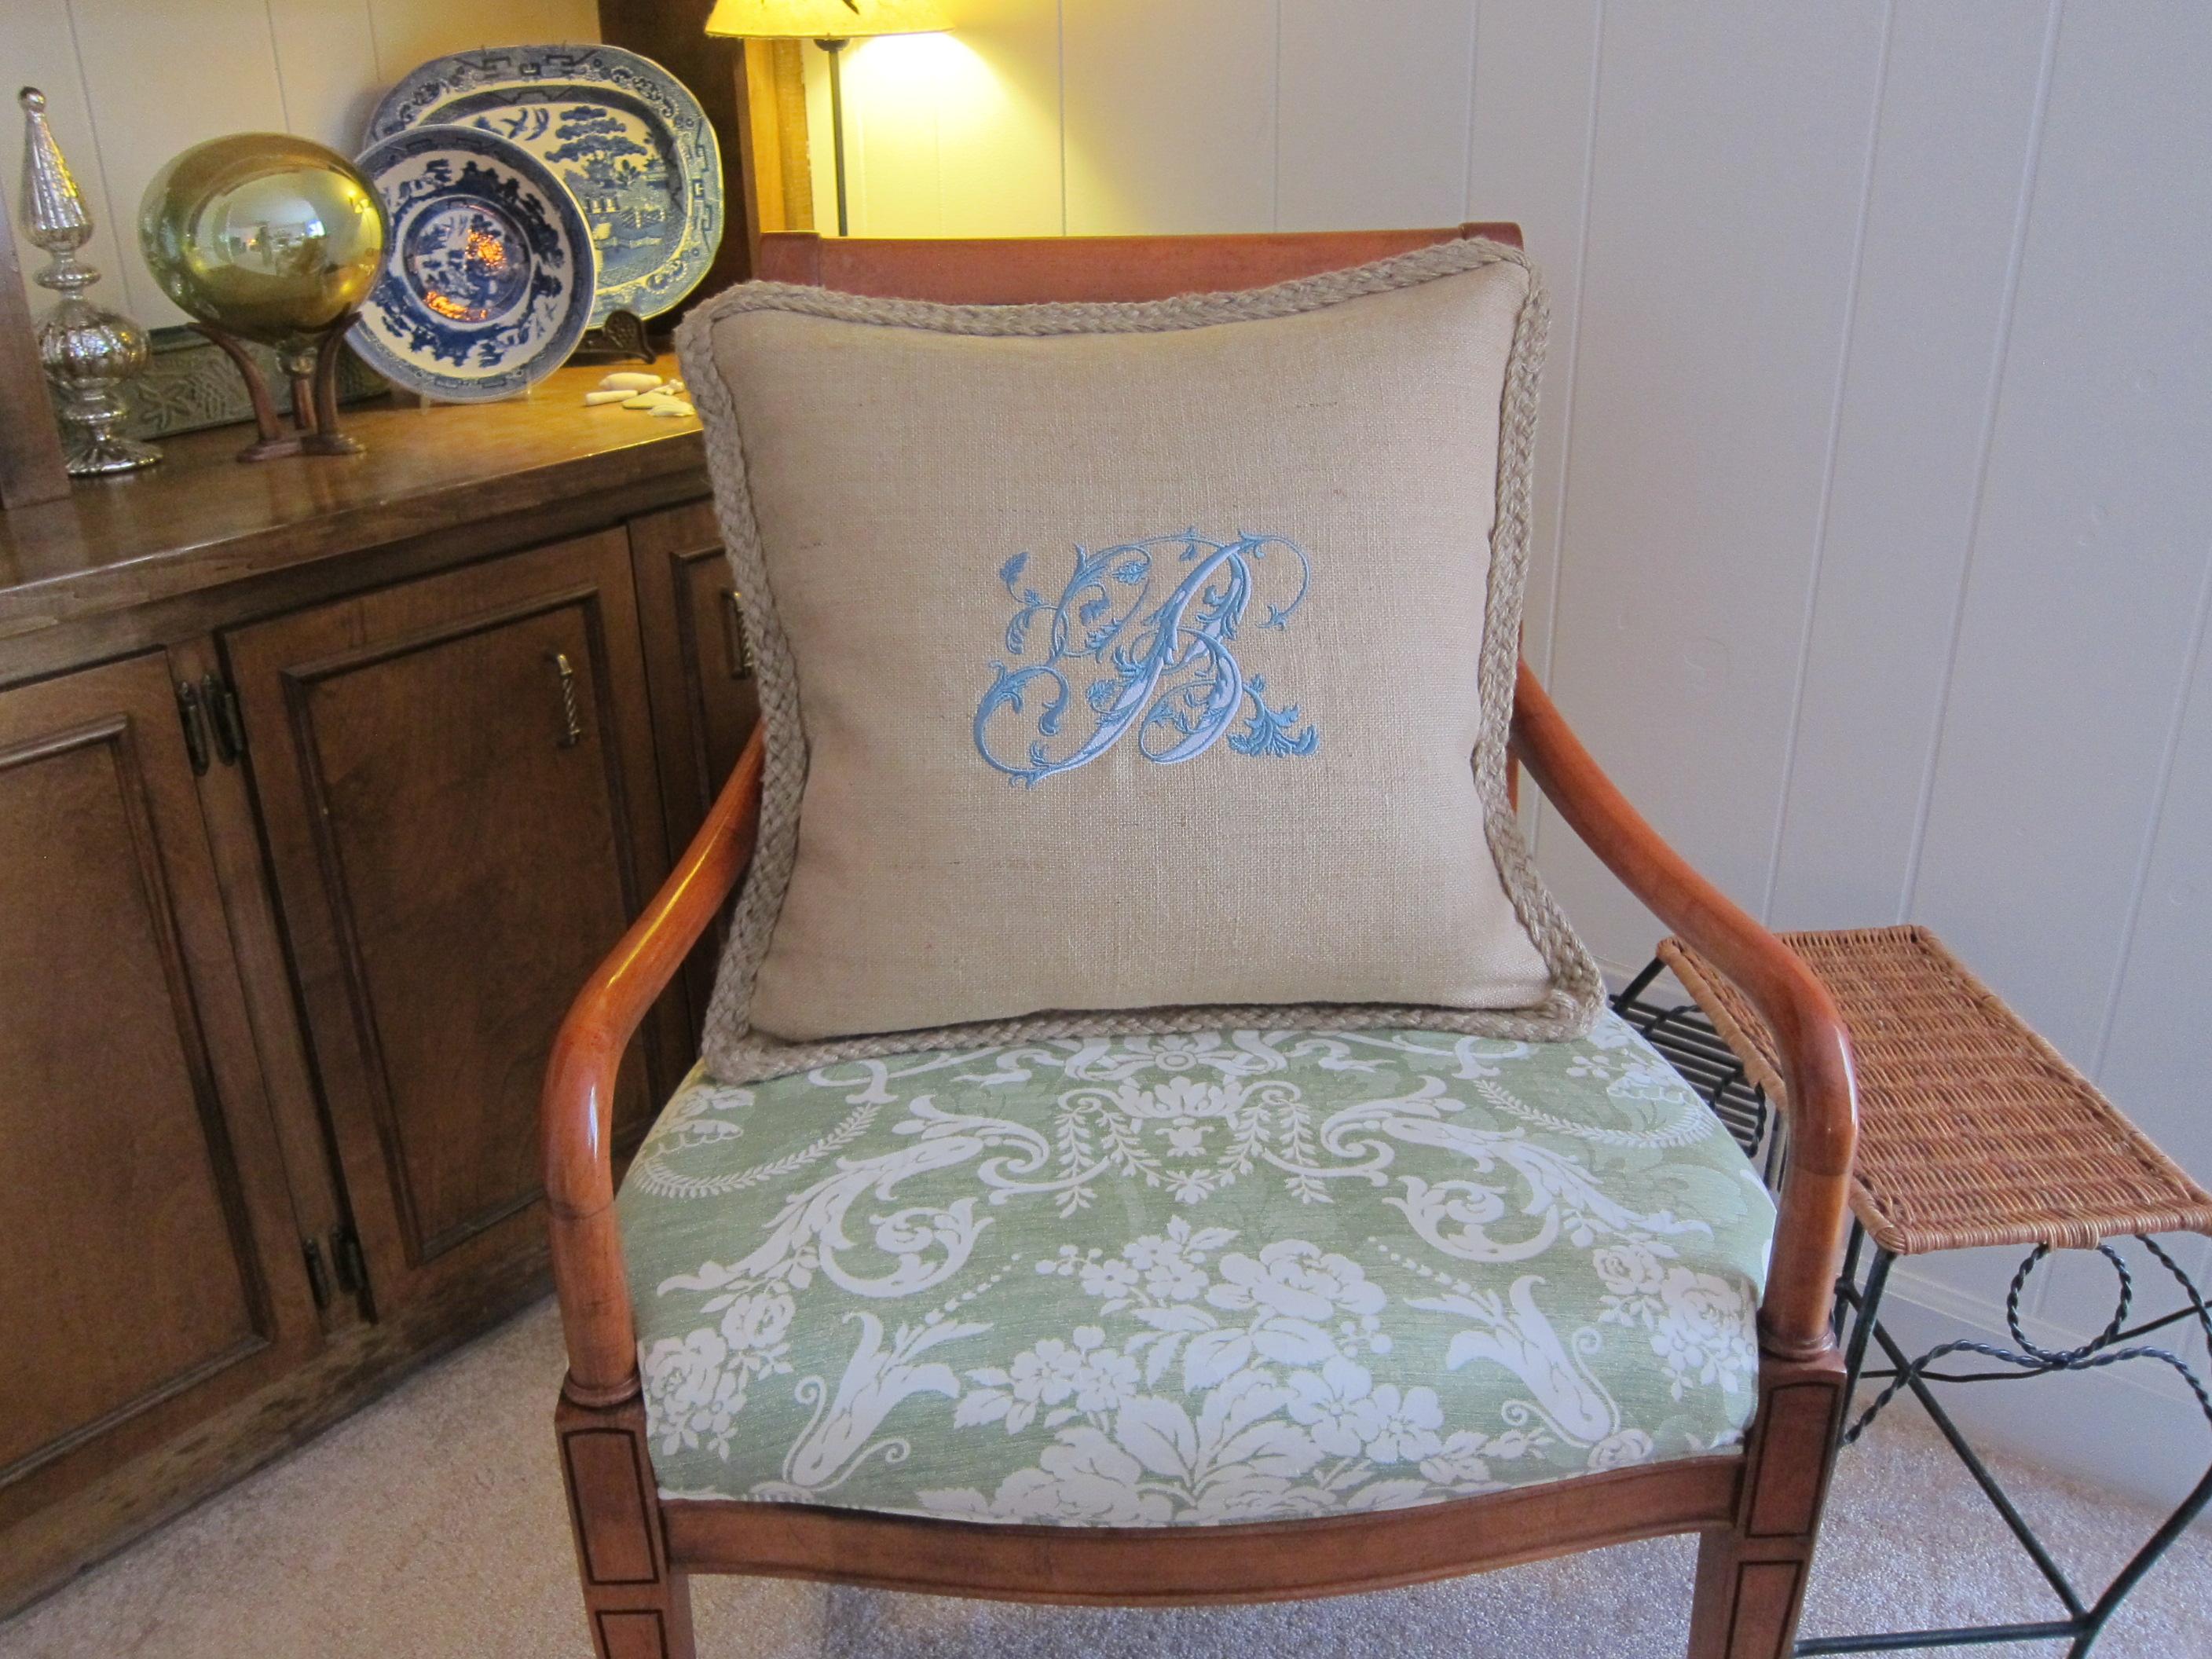 Embroidered Pillow on Green Chair